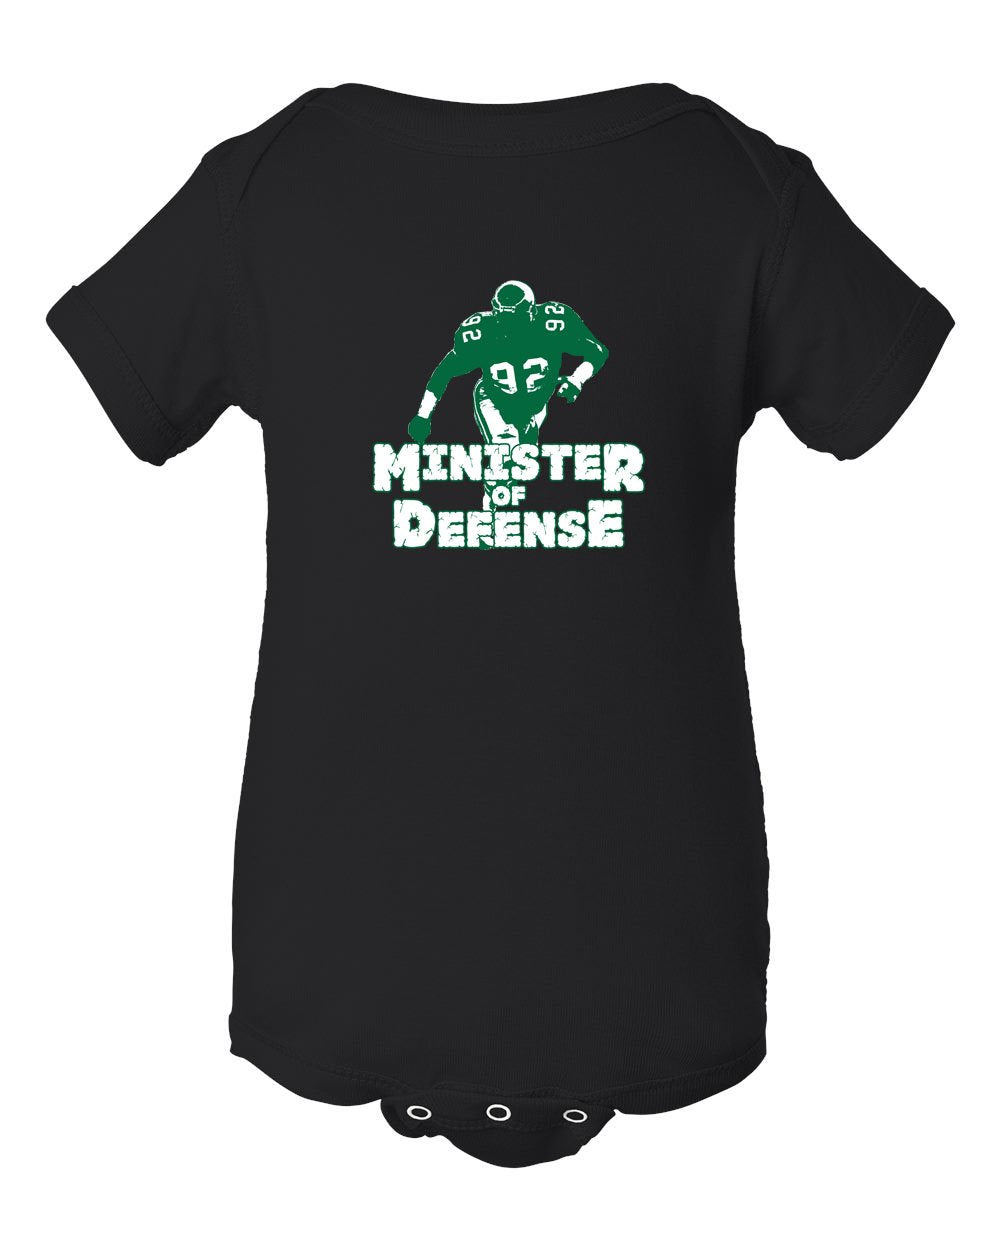 Minister Of Defense INFANT Onesie